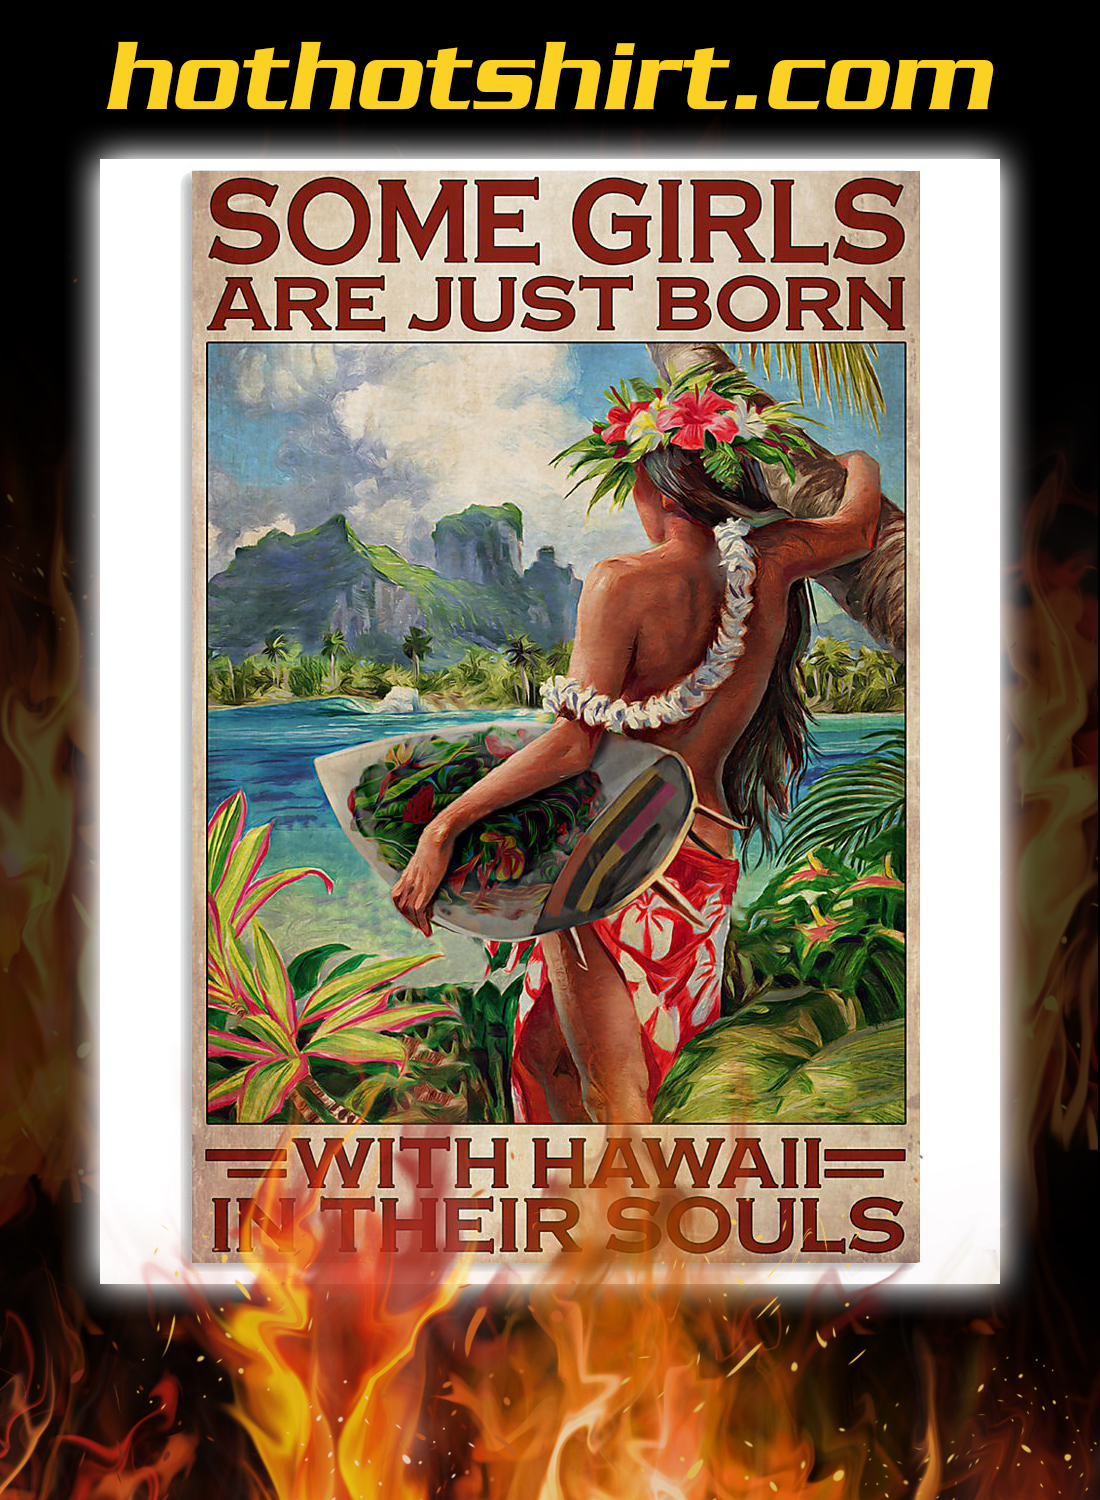 Some girls are just born with hawaii in their souls poster 2